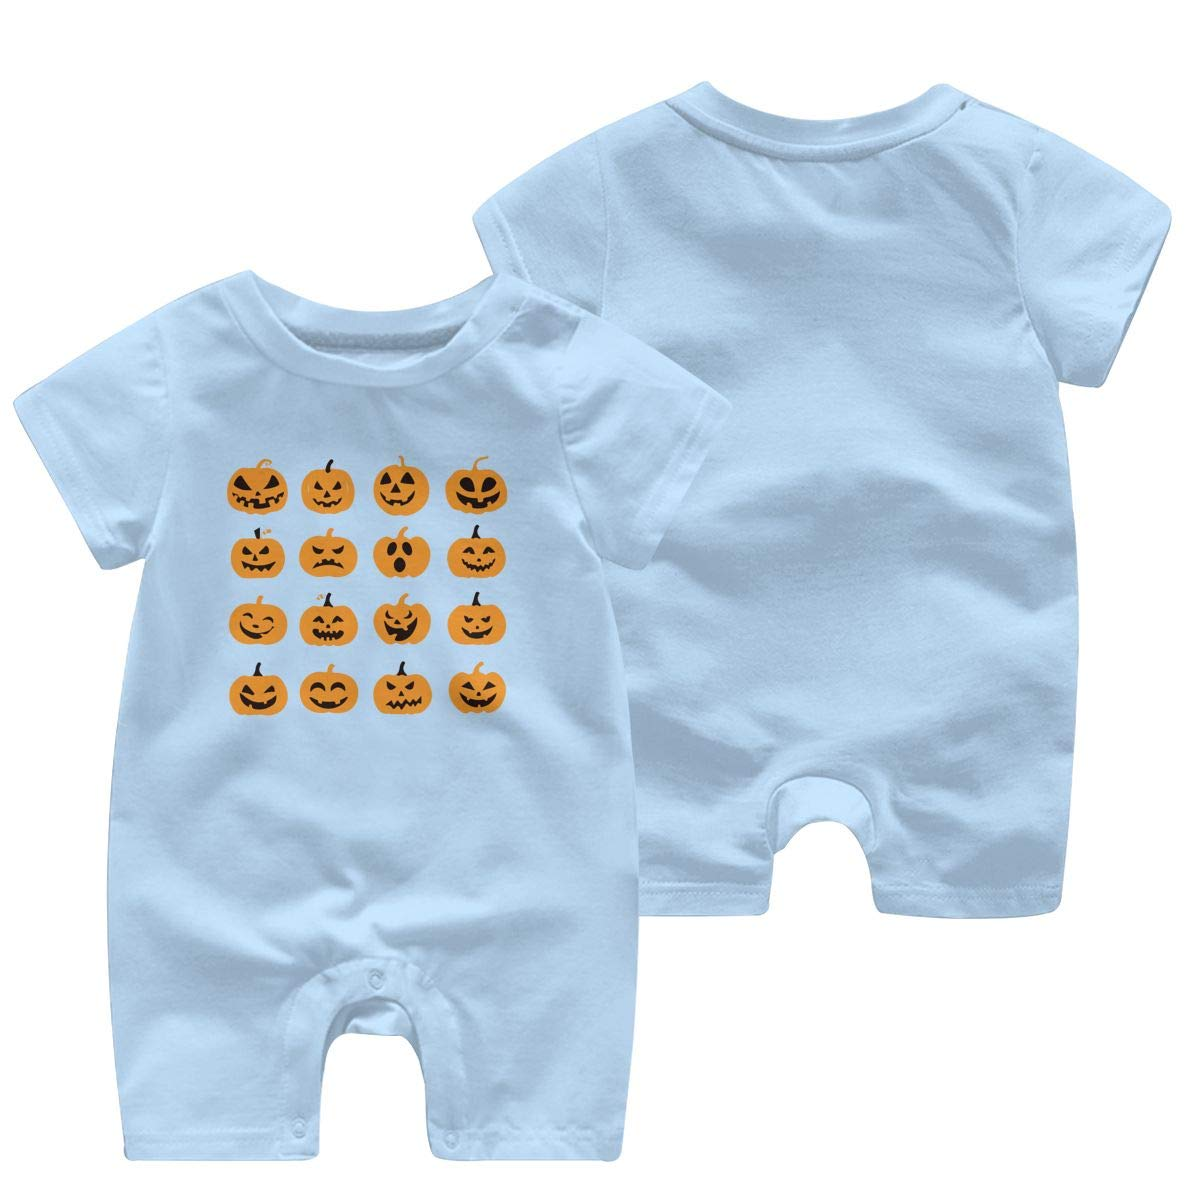 Just Born Baby Boys Girls Bodysuits Pumpkin Face Cotton Short Sleeve Infant Clothing